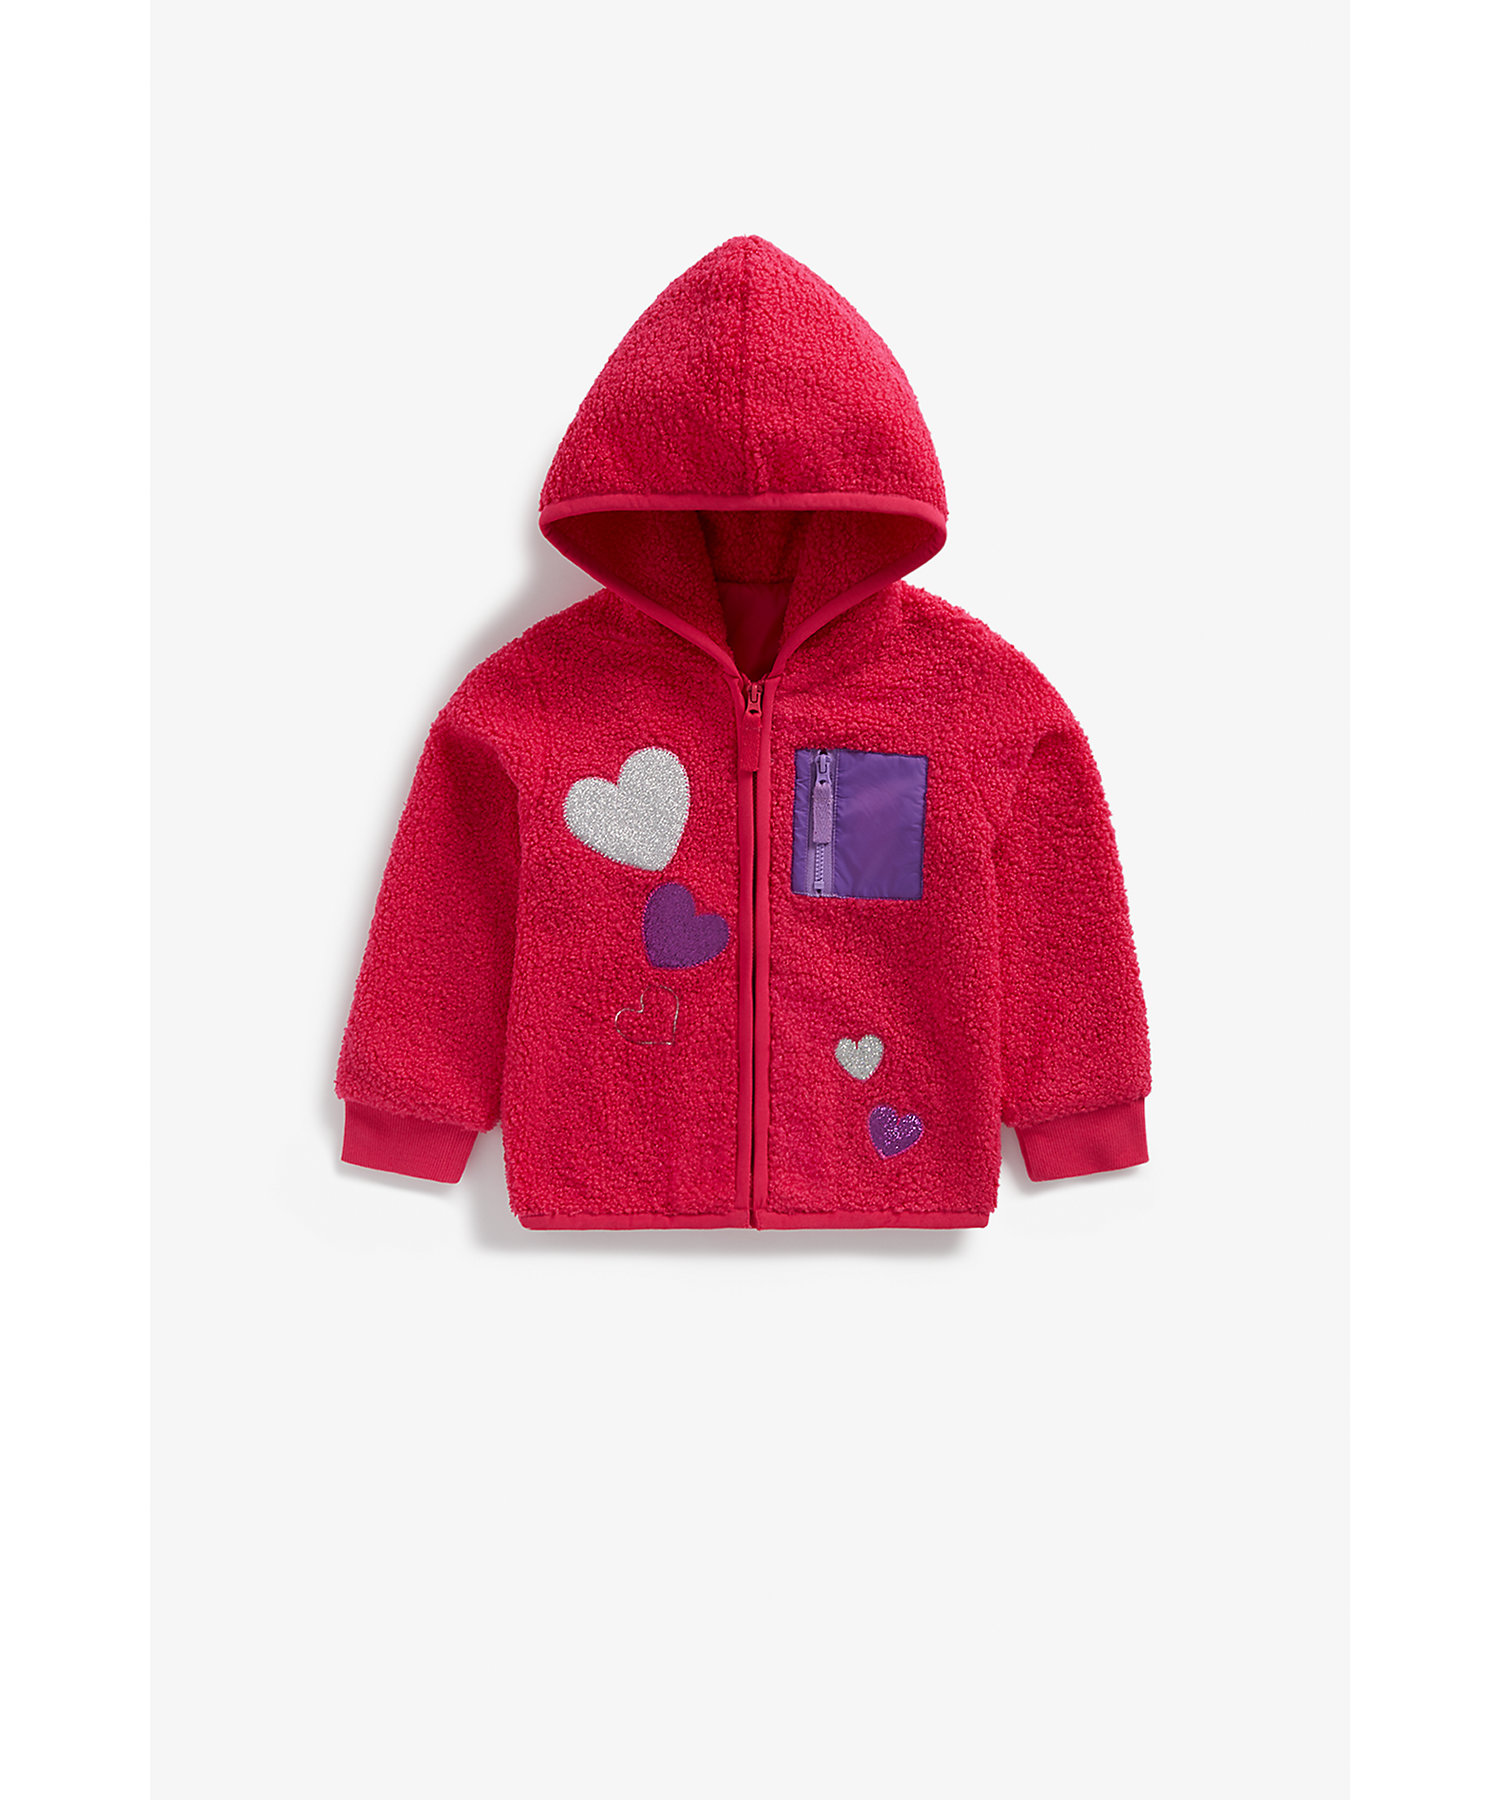 Mothercare | Girls Full Sleeves Zip Opening Hoody Glittery Heart Patchwork - Red